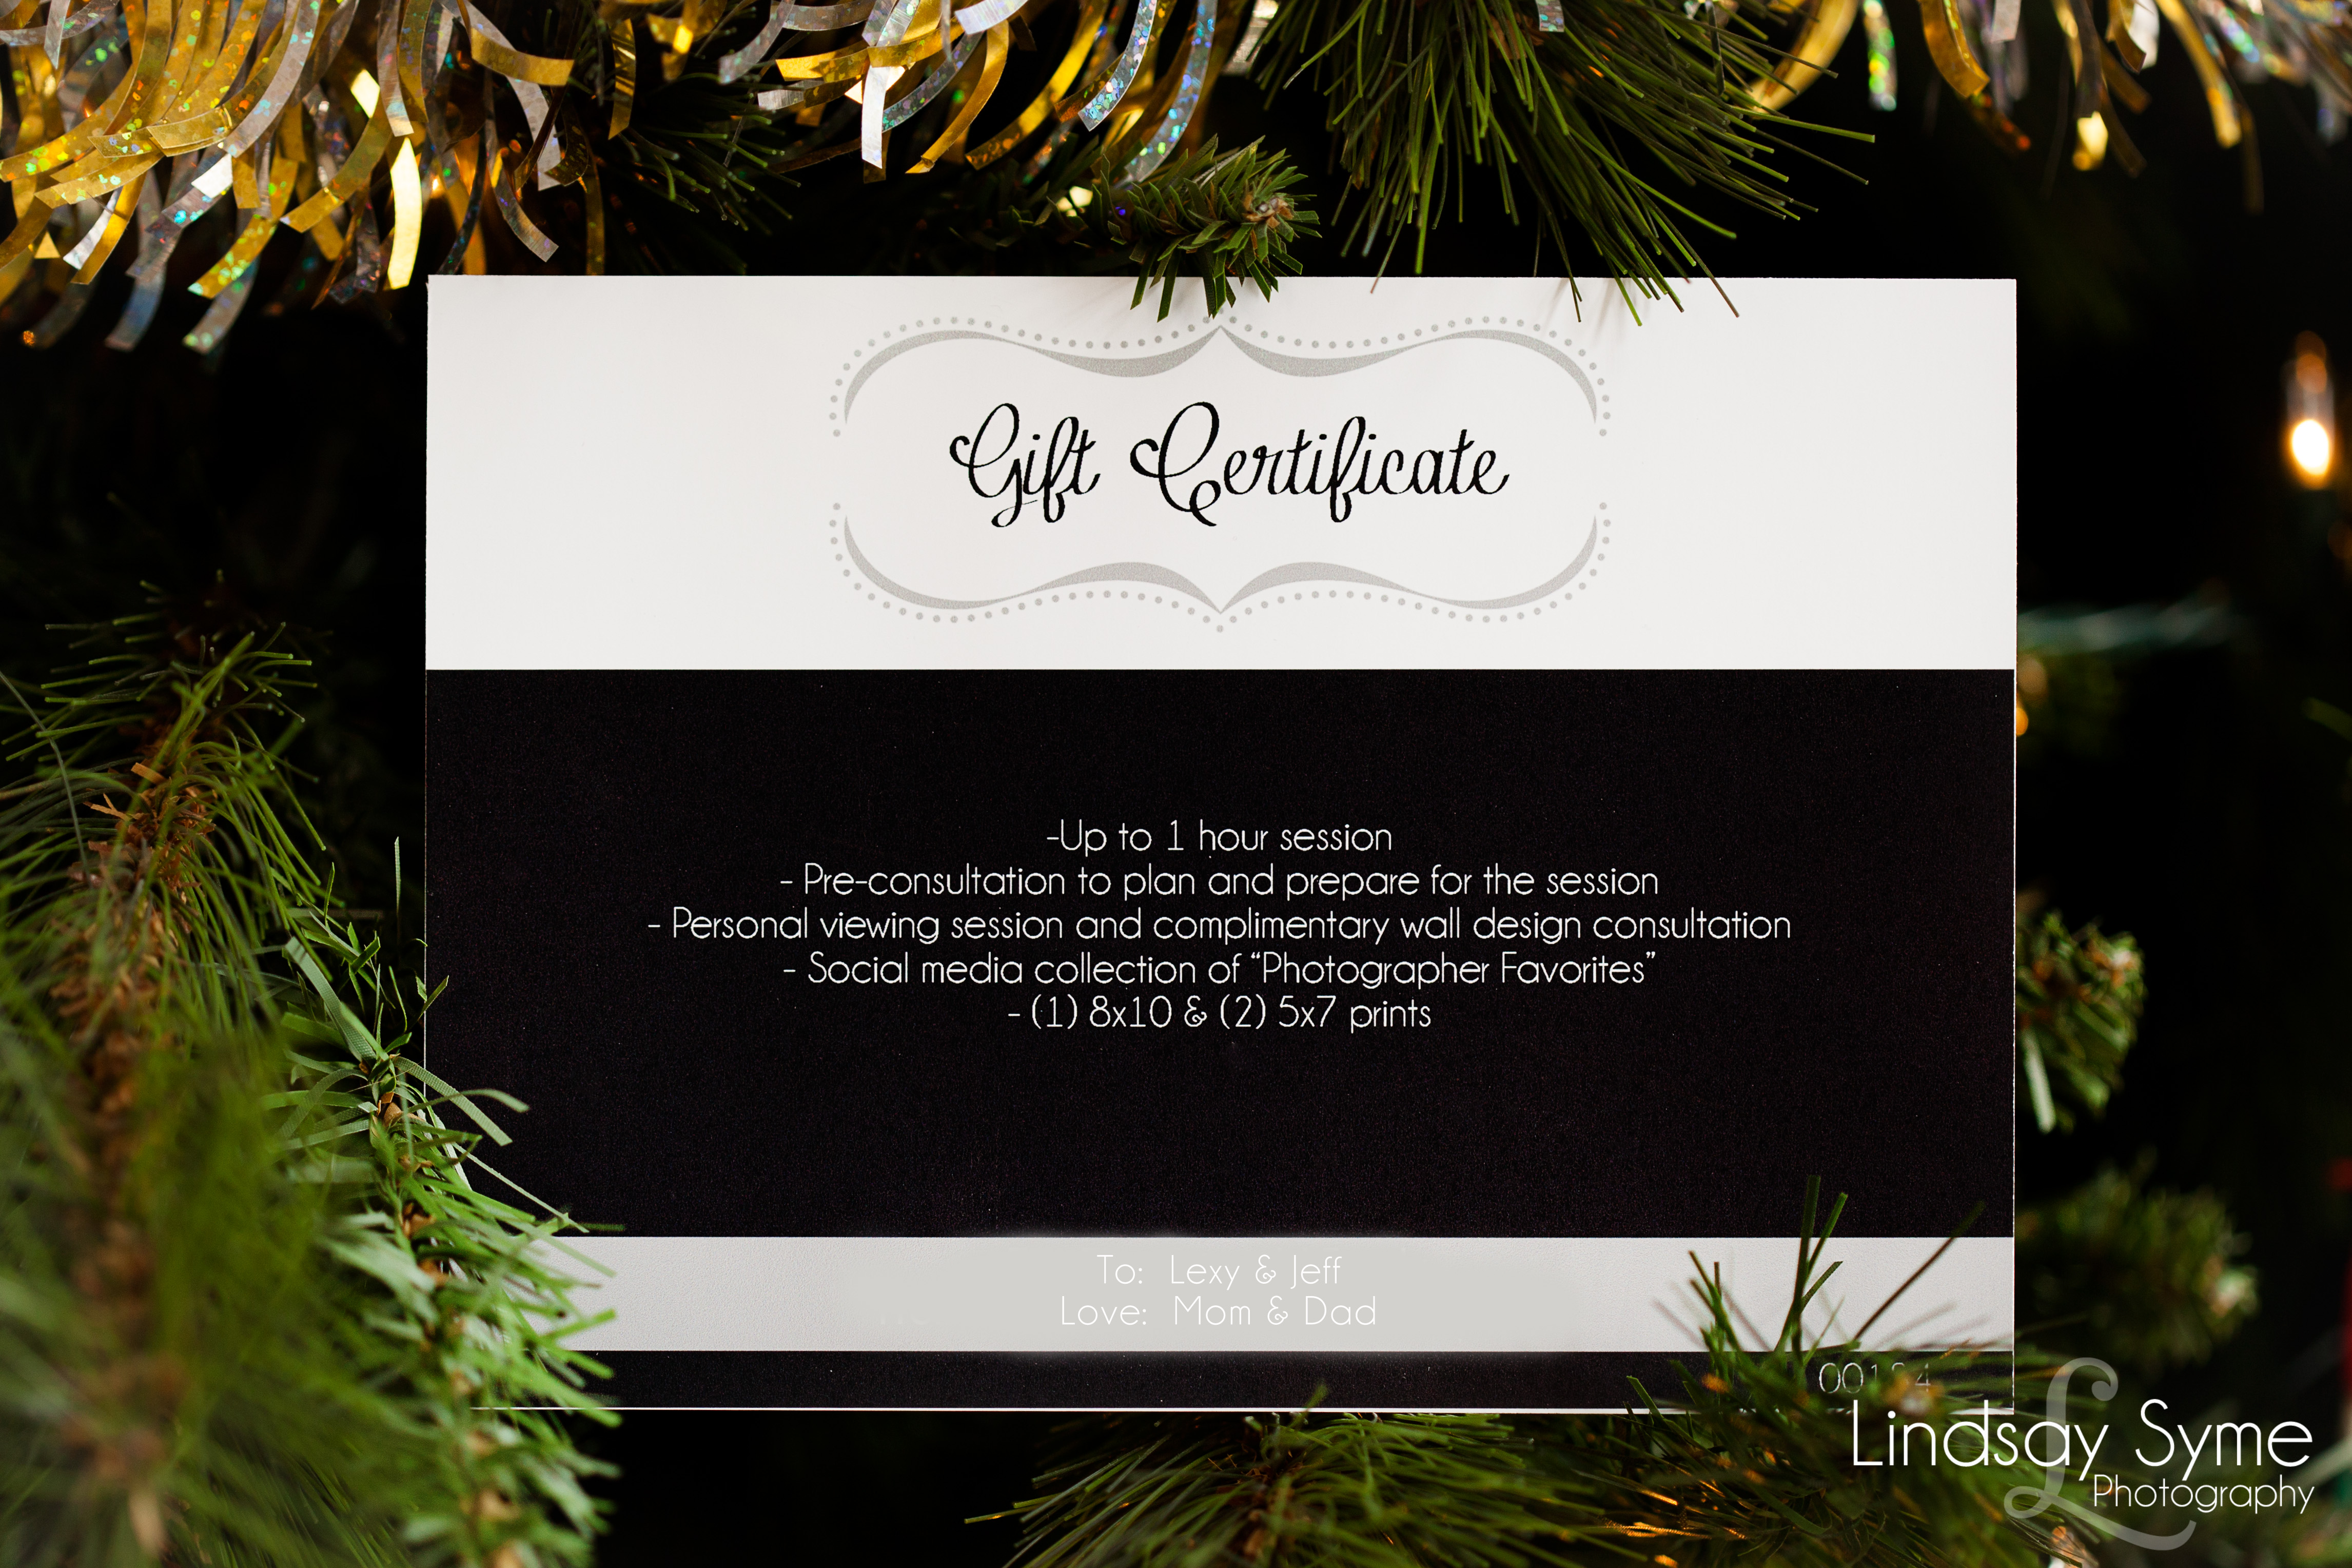 Photography Gift Certificates - Lindsay Syme Photography